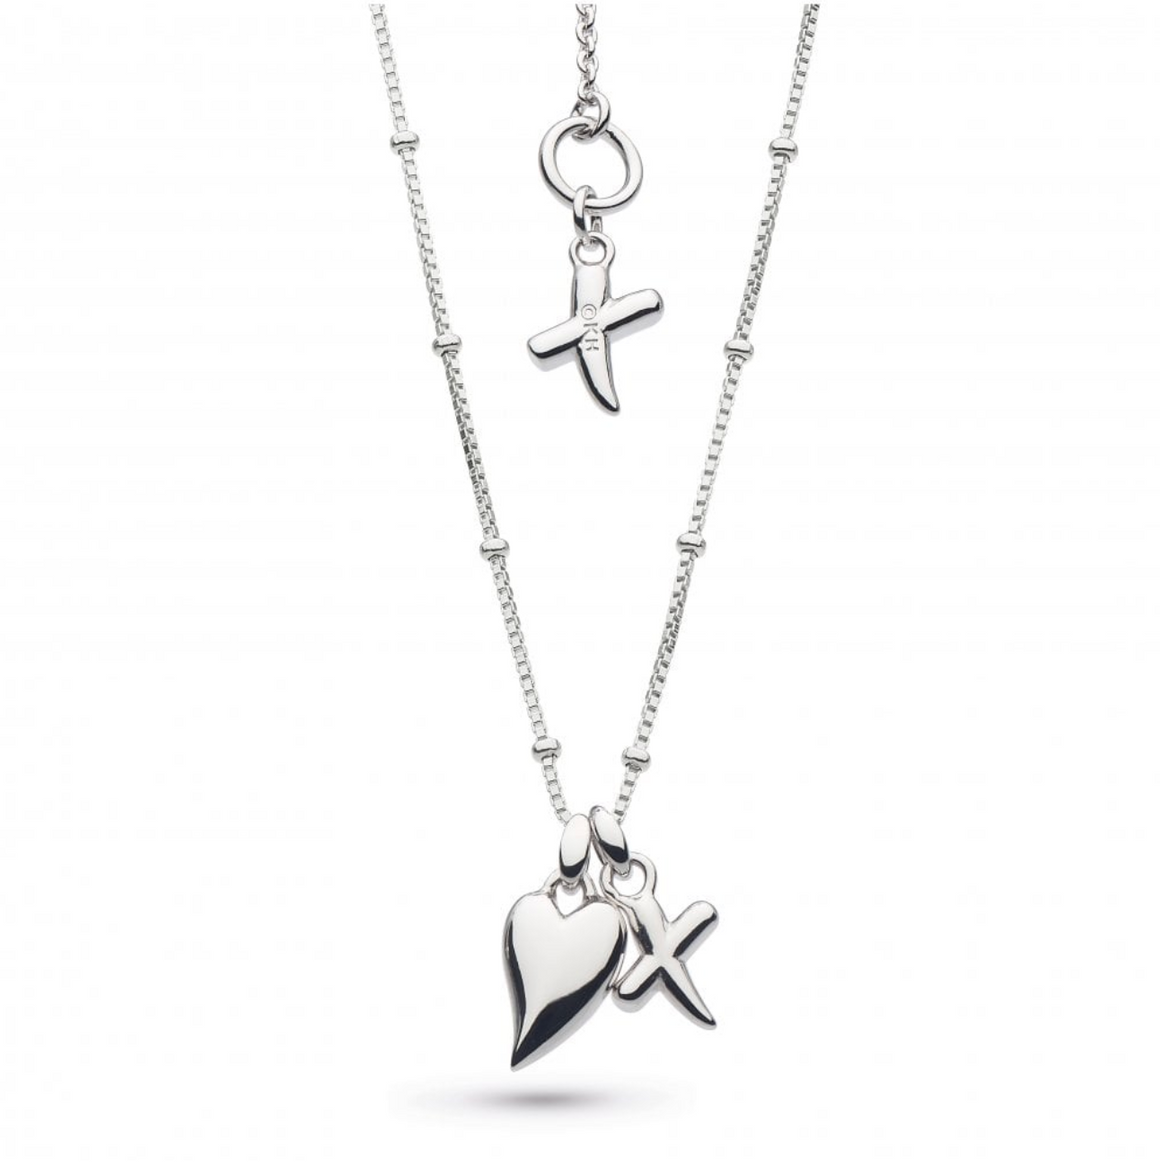 Kit Heath Desire Kiss Rhodium Plate Heart & 'X' Ball Chain Necklace - 90dk028